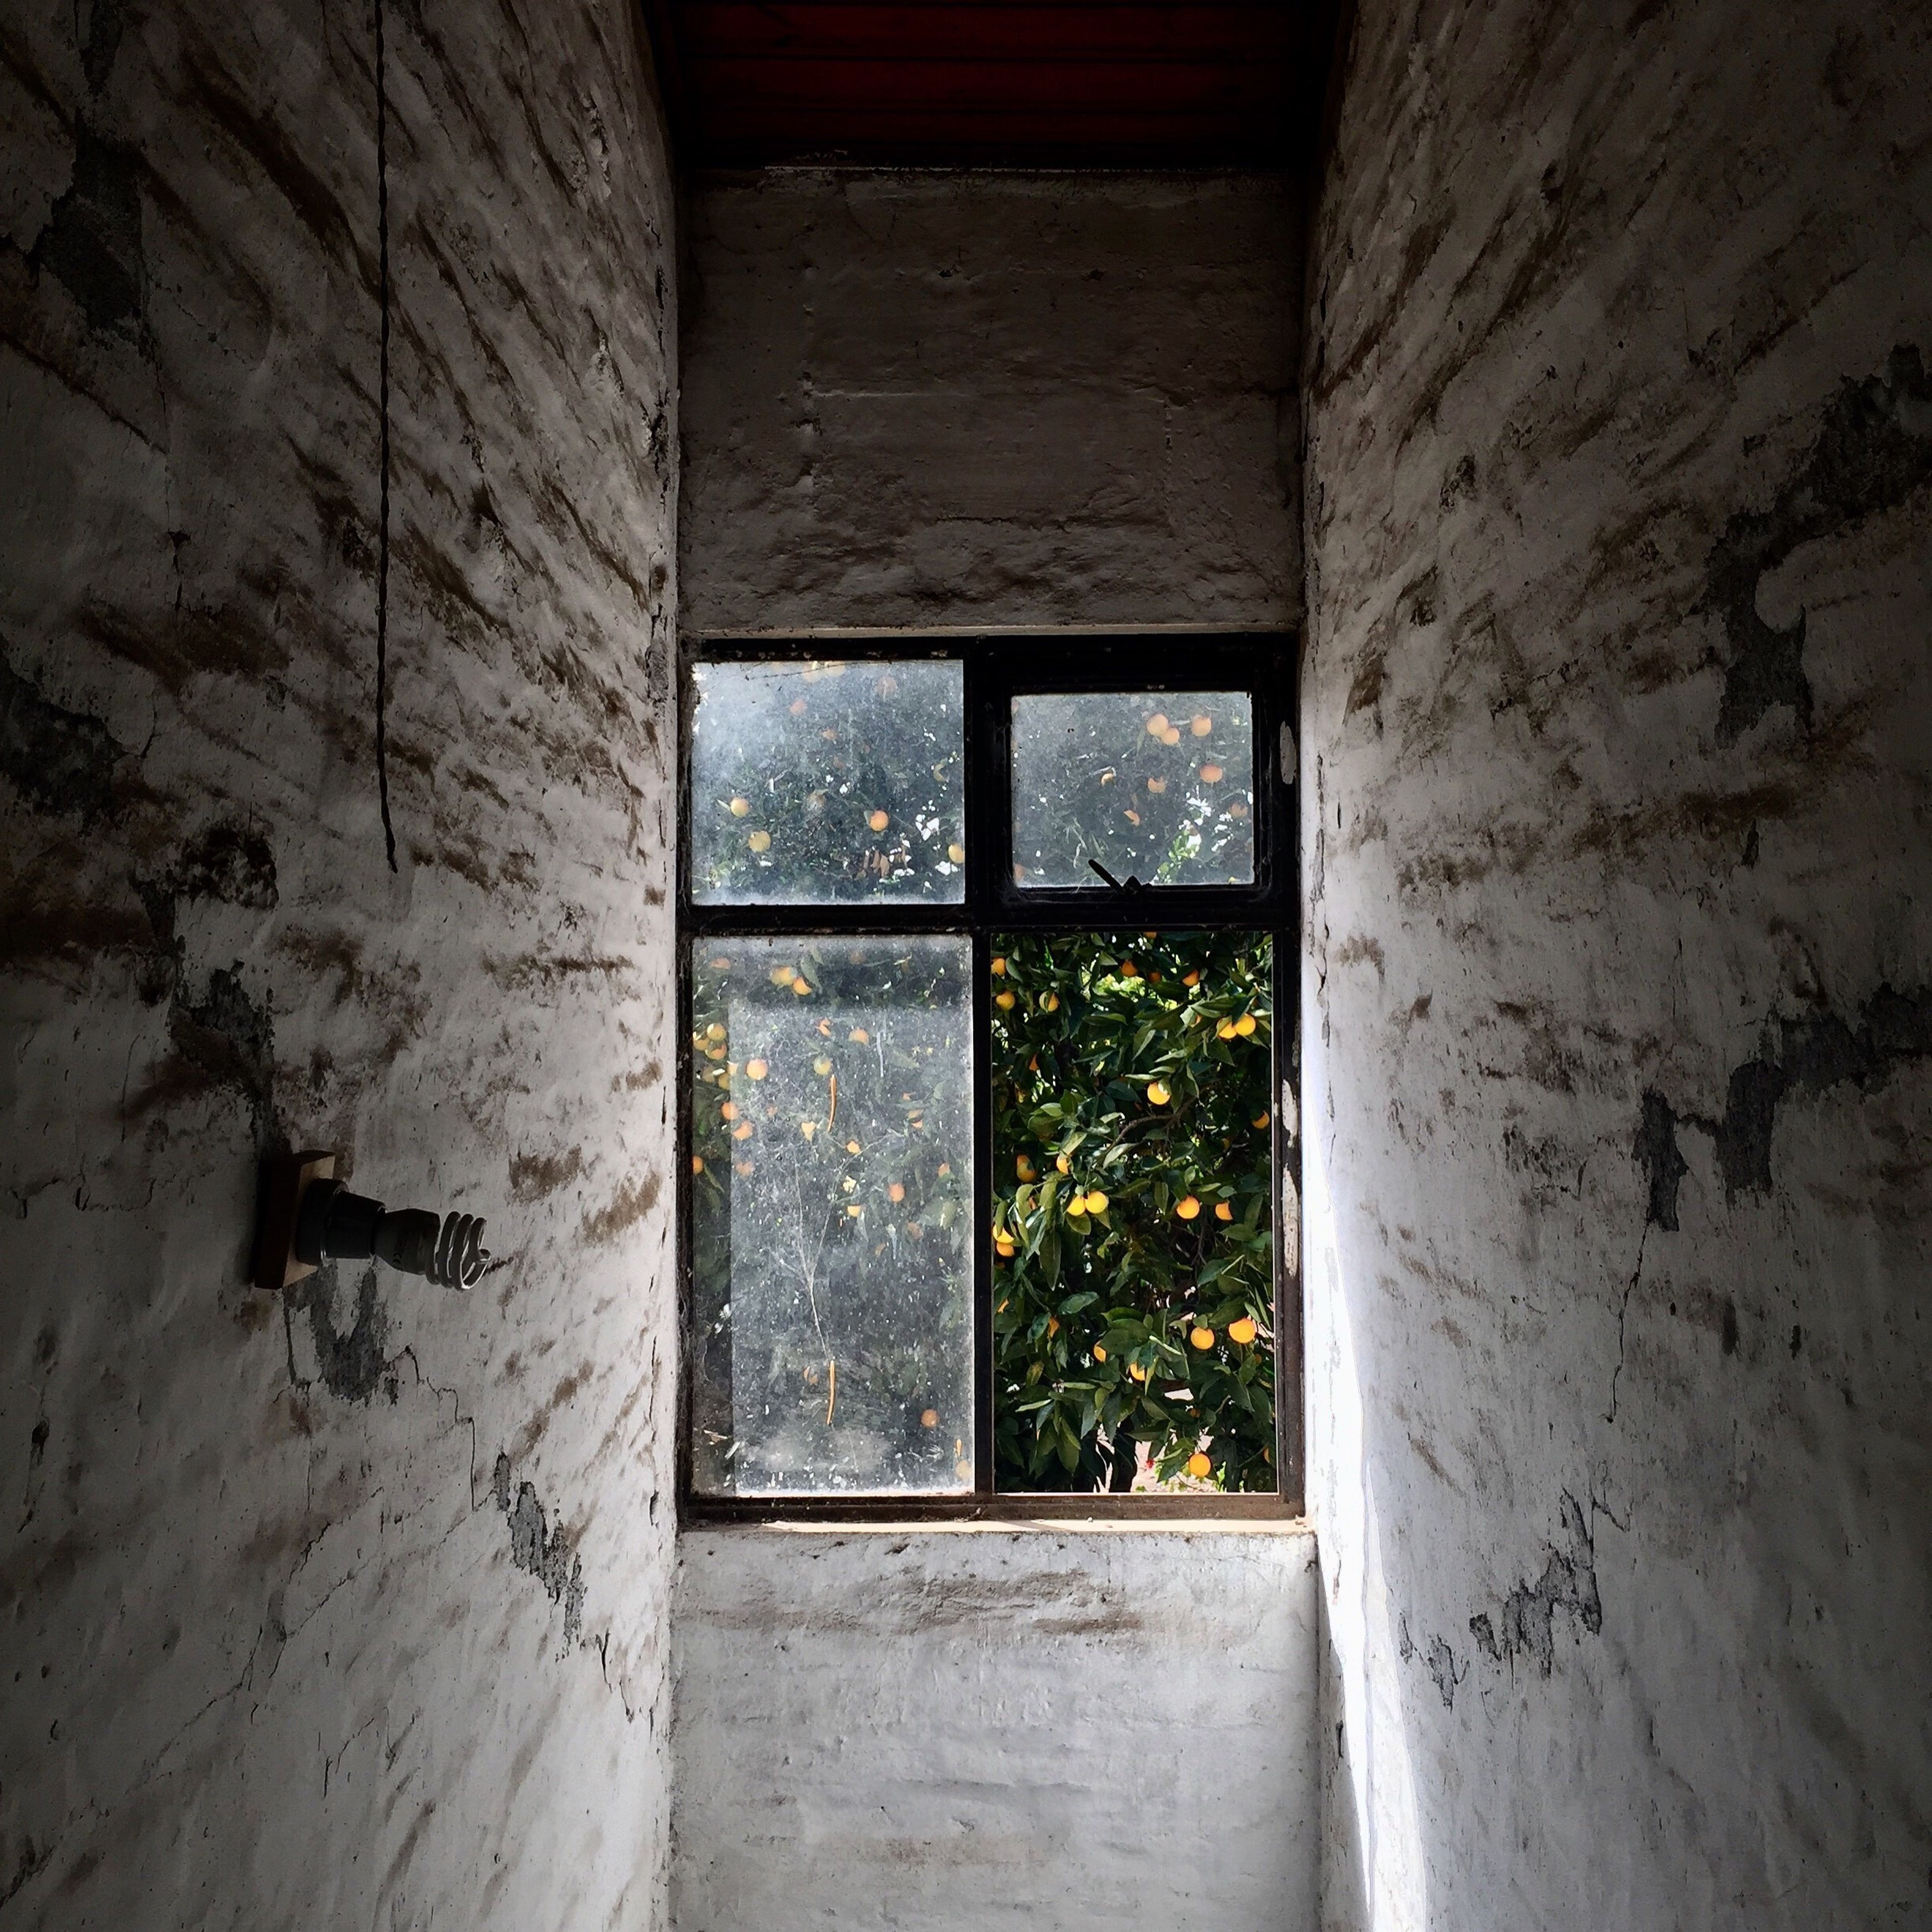 window, wall - building feature, indoors, architecture, built structure, no people, abandoned, day, close-up